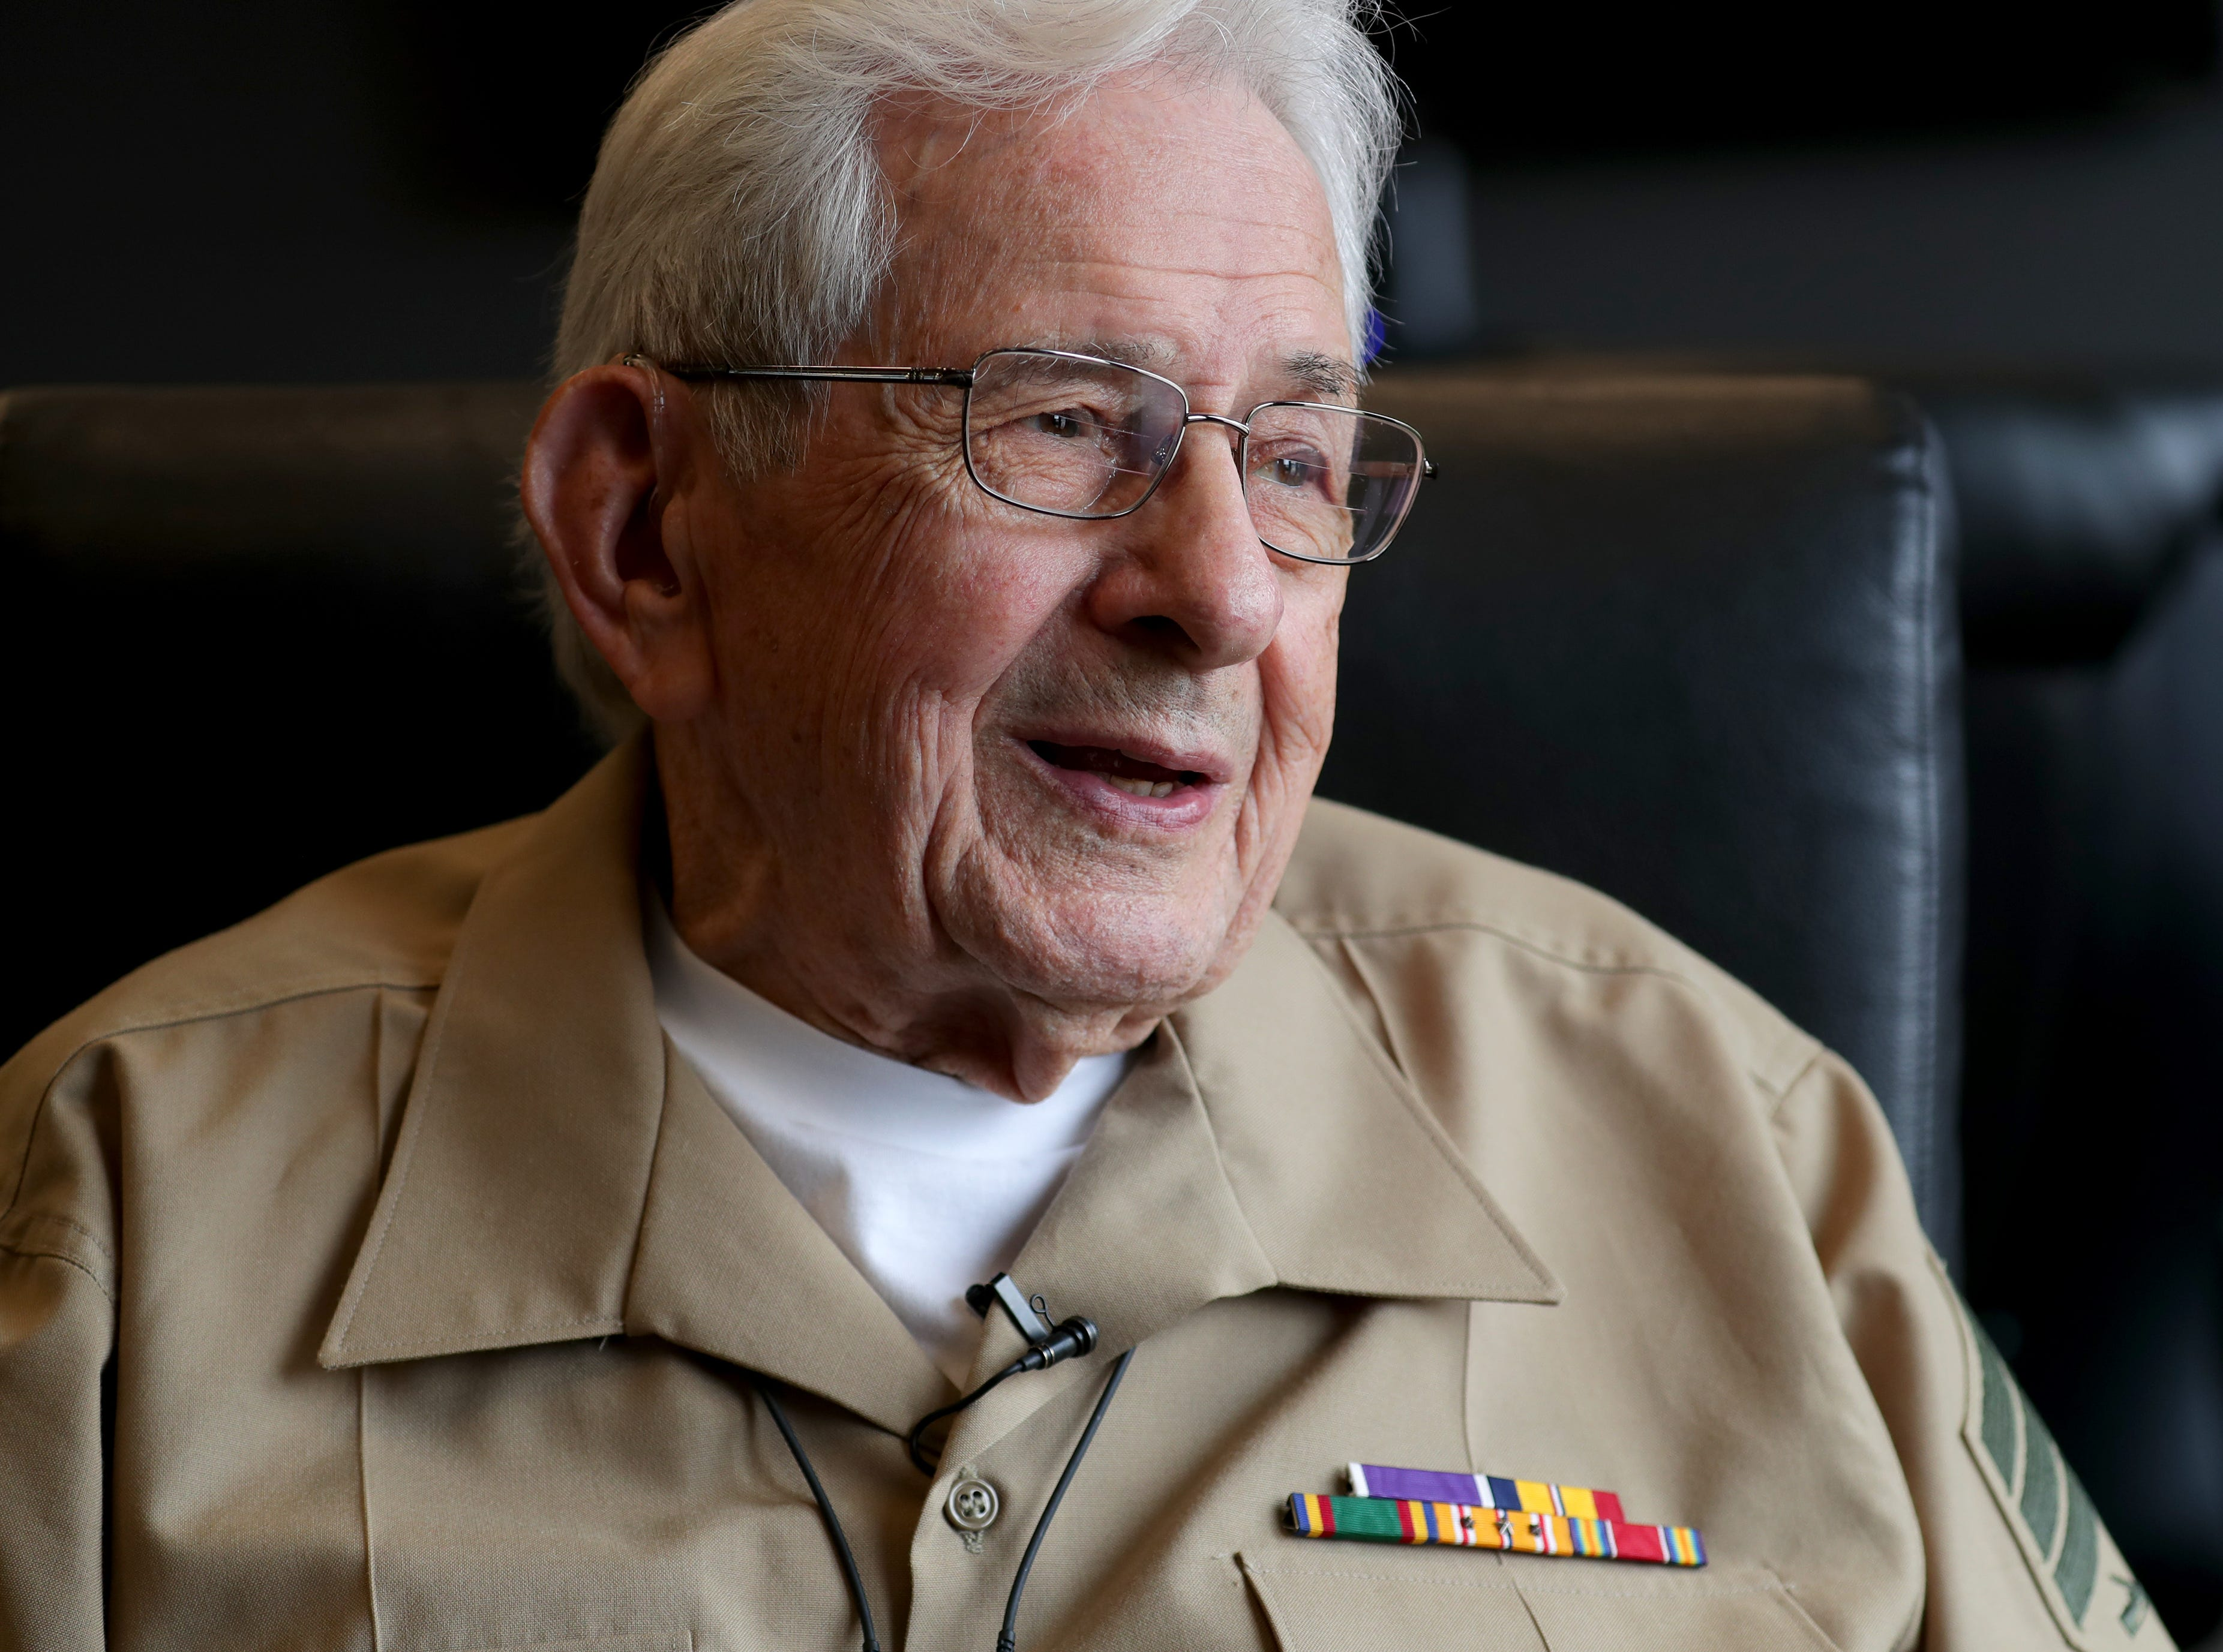 Sgt. Edgar Harrell tells his story of survival during the USS Indianapolis sinking before he spoke at Spectrum Investment Advisors, 6329 W. Mequon Road in Mequon, on Wednesday.